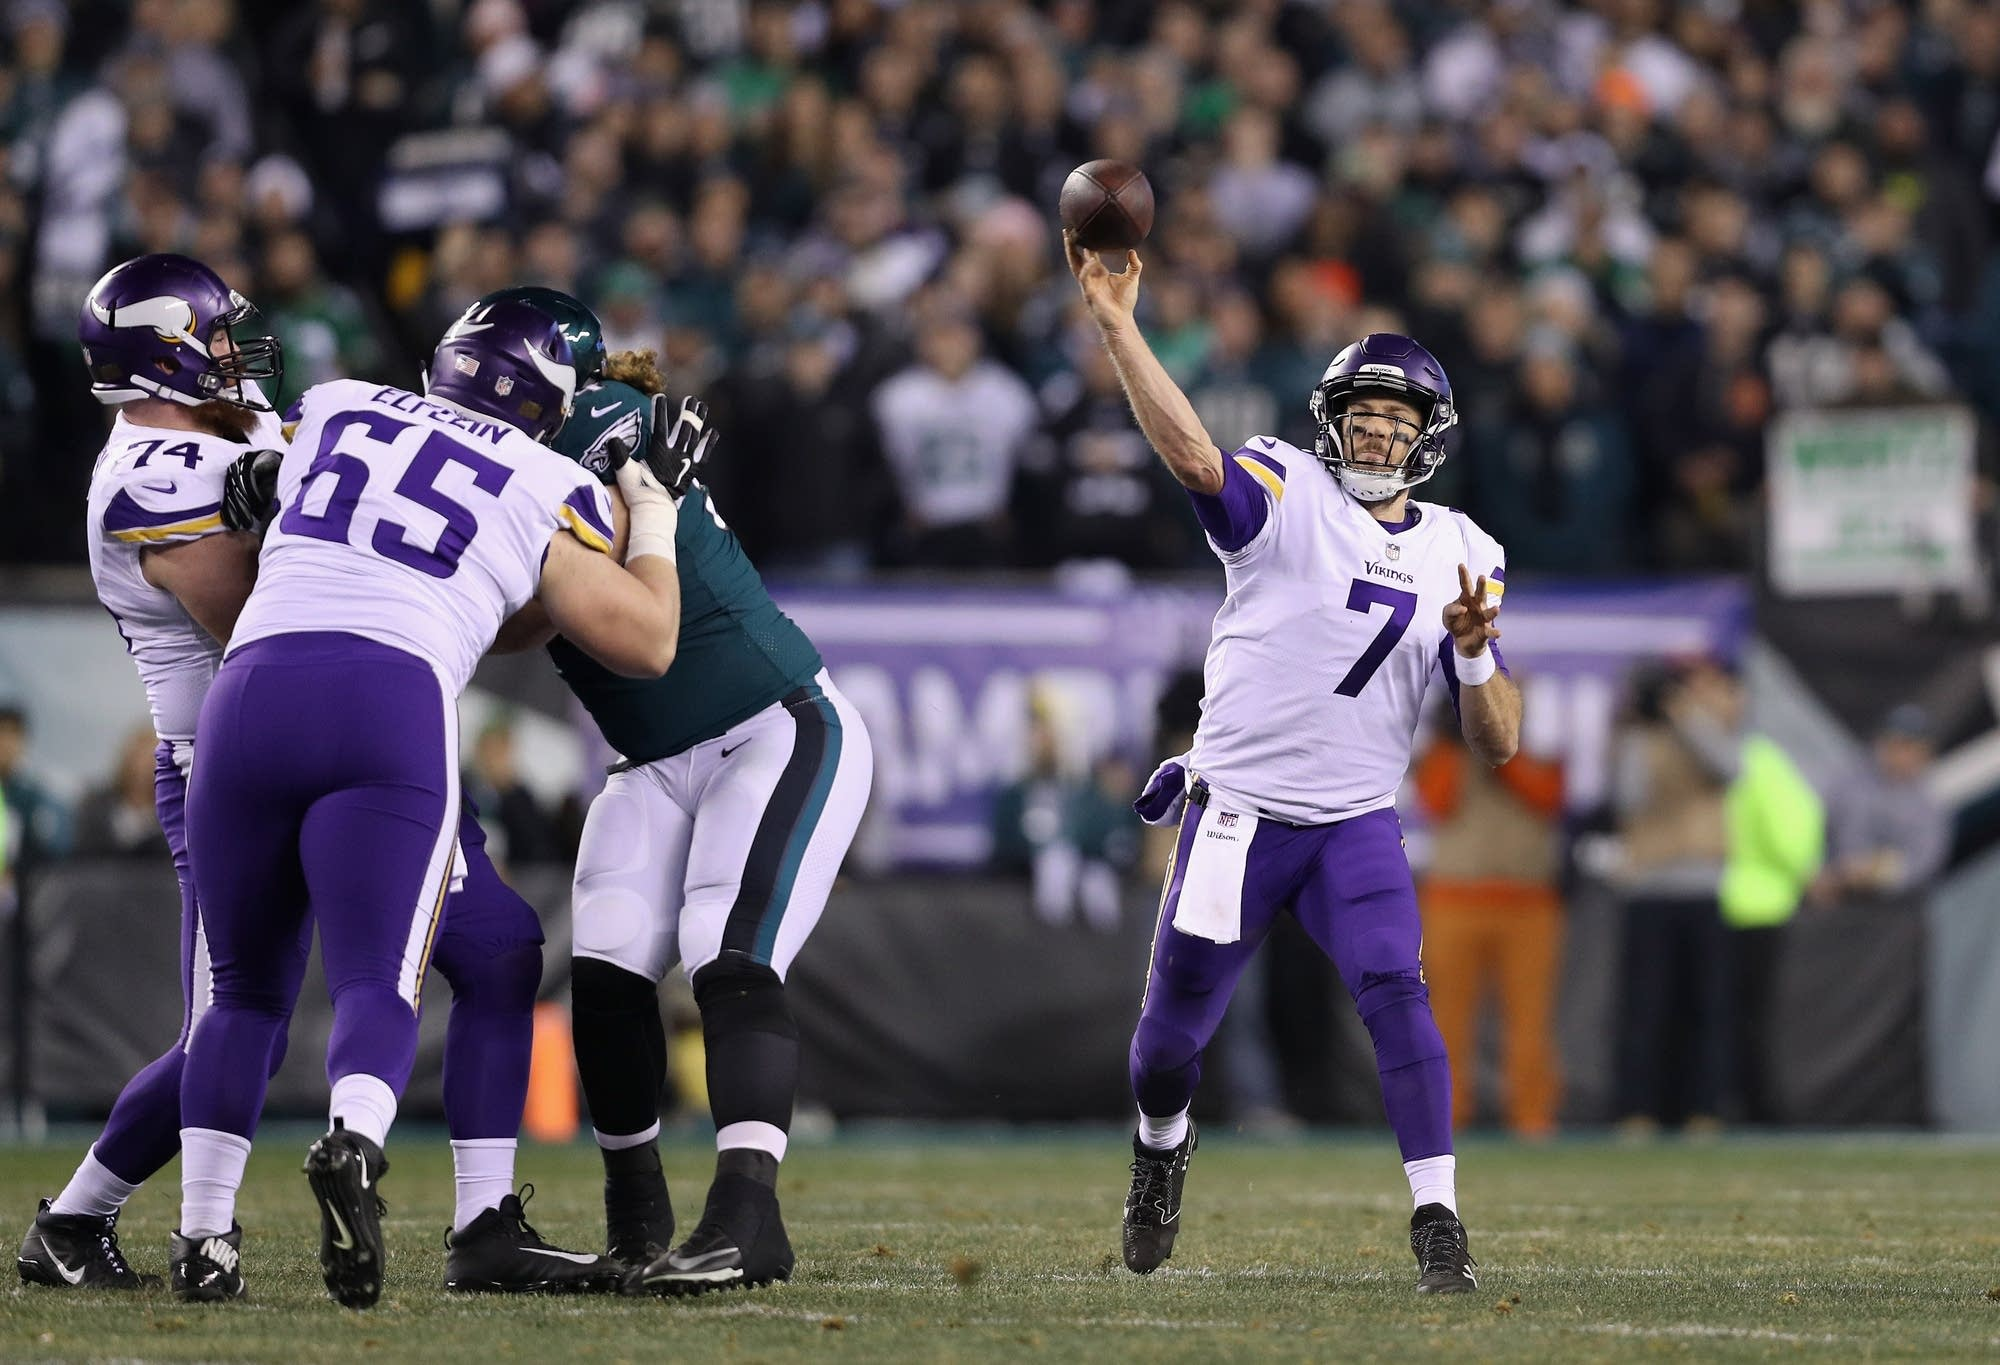 Case Keenum (7) makes a pass during the first quarter.